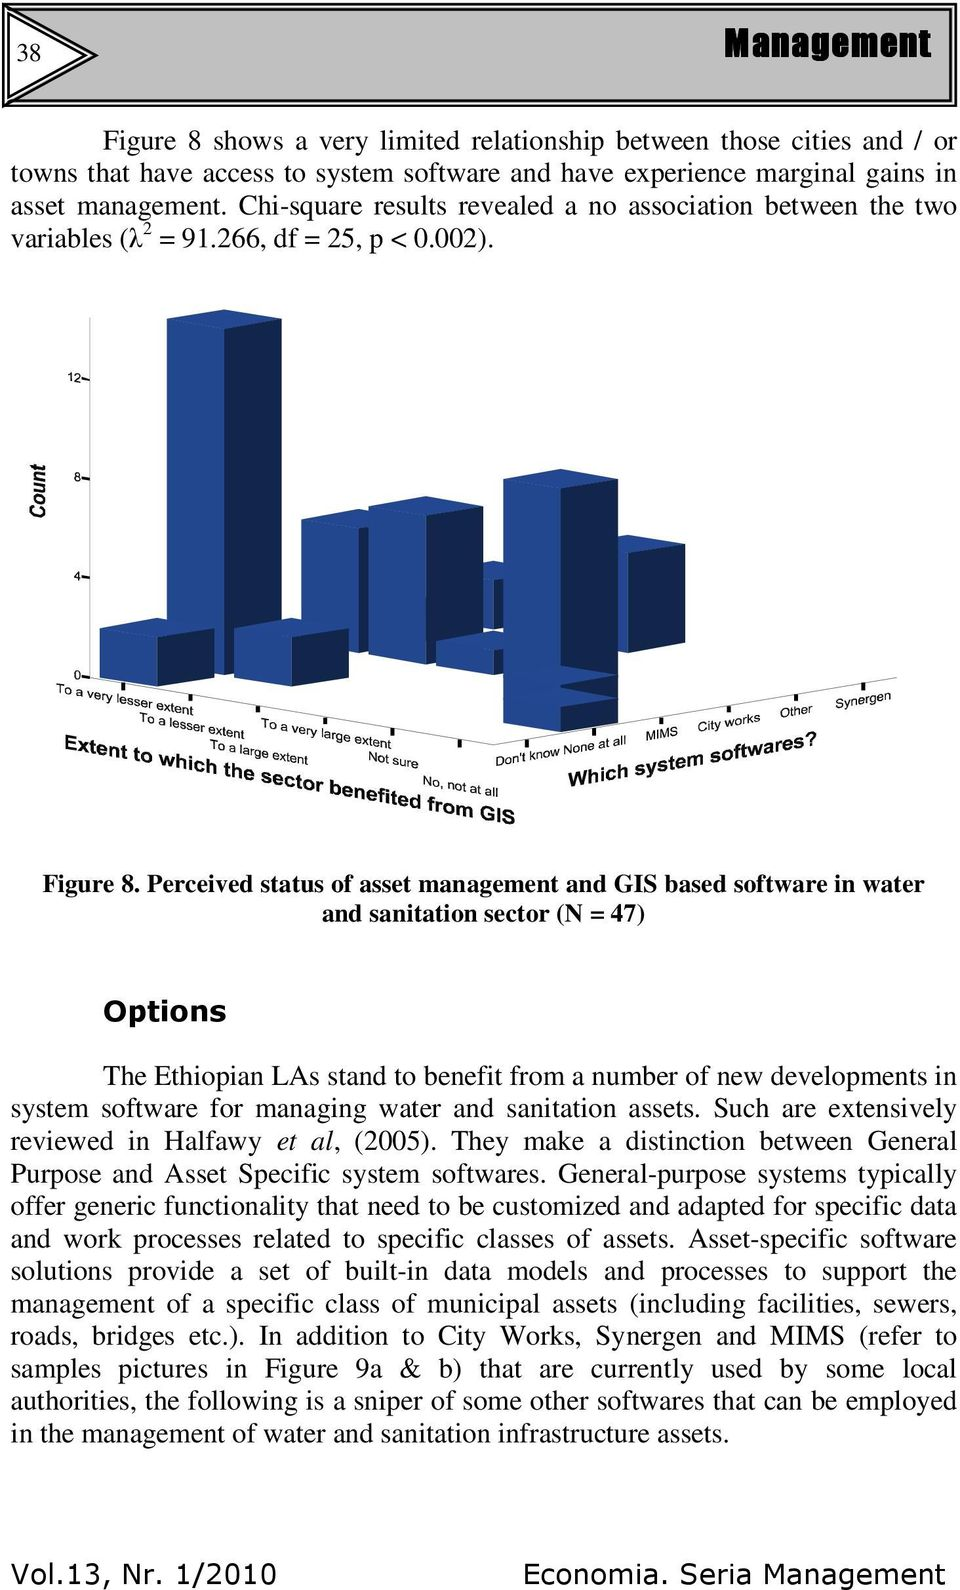 Perceived status of asset management and GIS based software in water and sanitation sector (N = 47) Options The Ethiopian LAs stand to benefit from a number of new developments in system software for